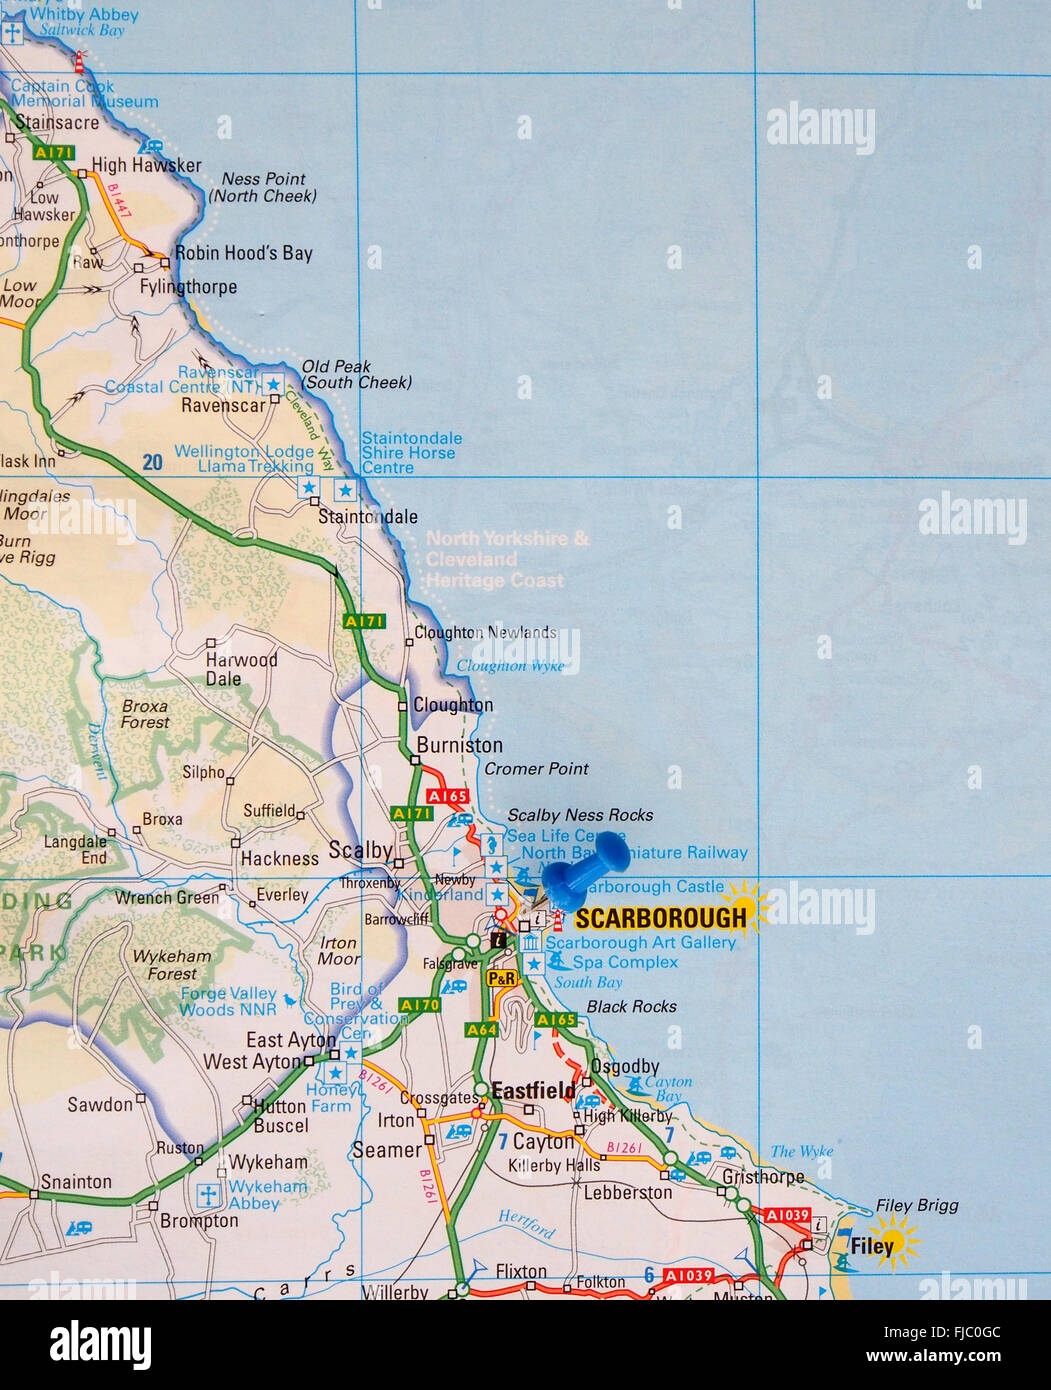 Map Of England East Coast.Road Map Of The East Coast Of England Showing Robin Hoods Bay And